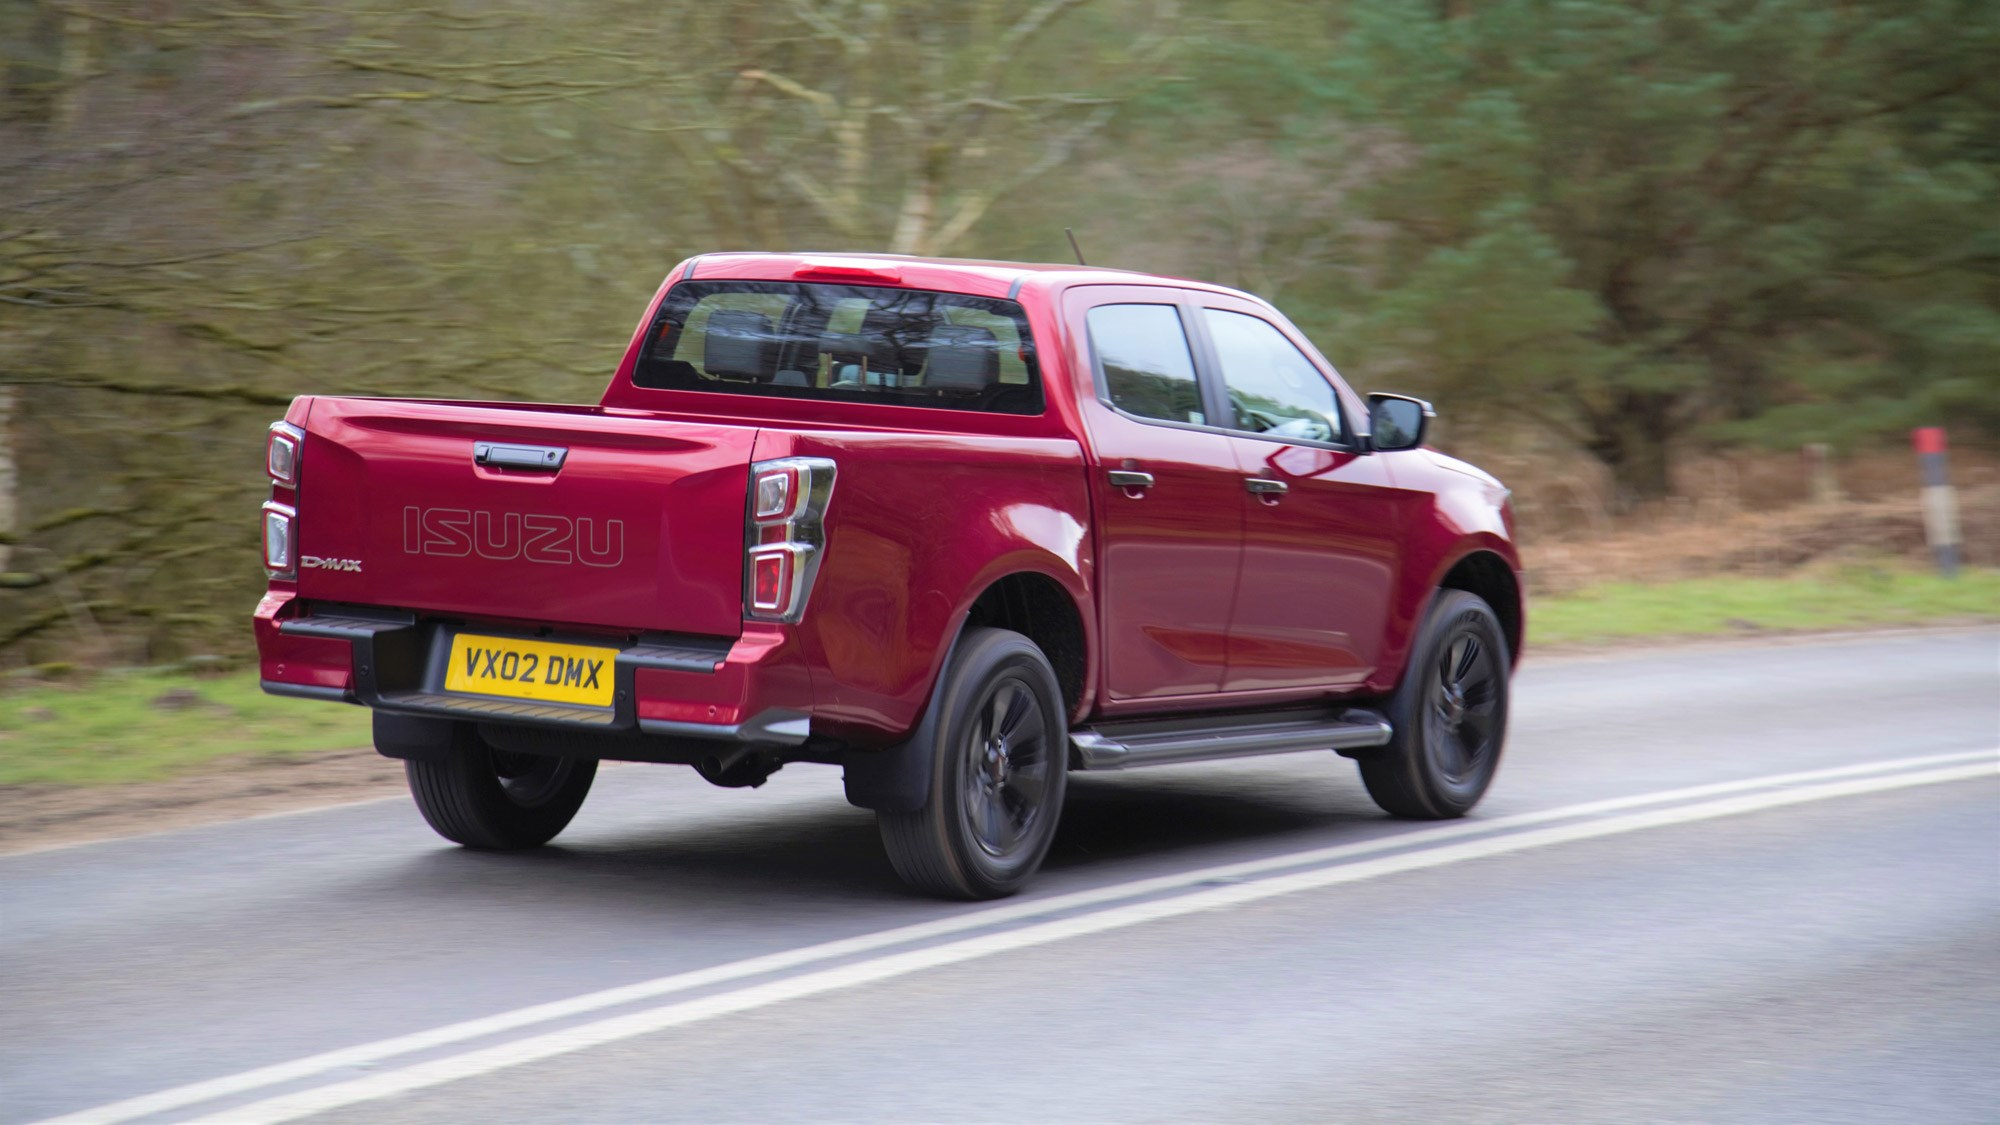 Isuzu D-Max review 2021, rear view, driving, red